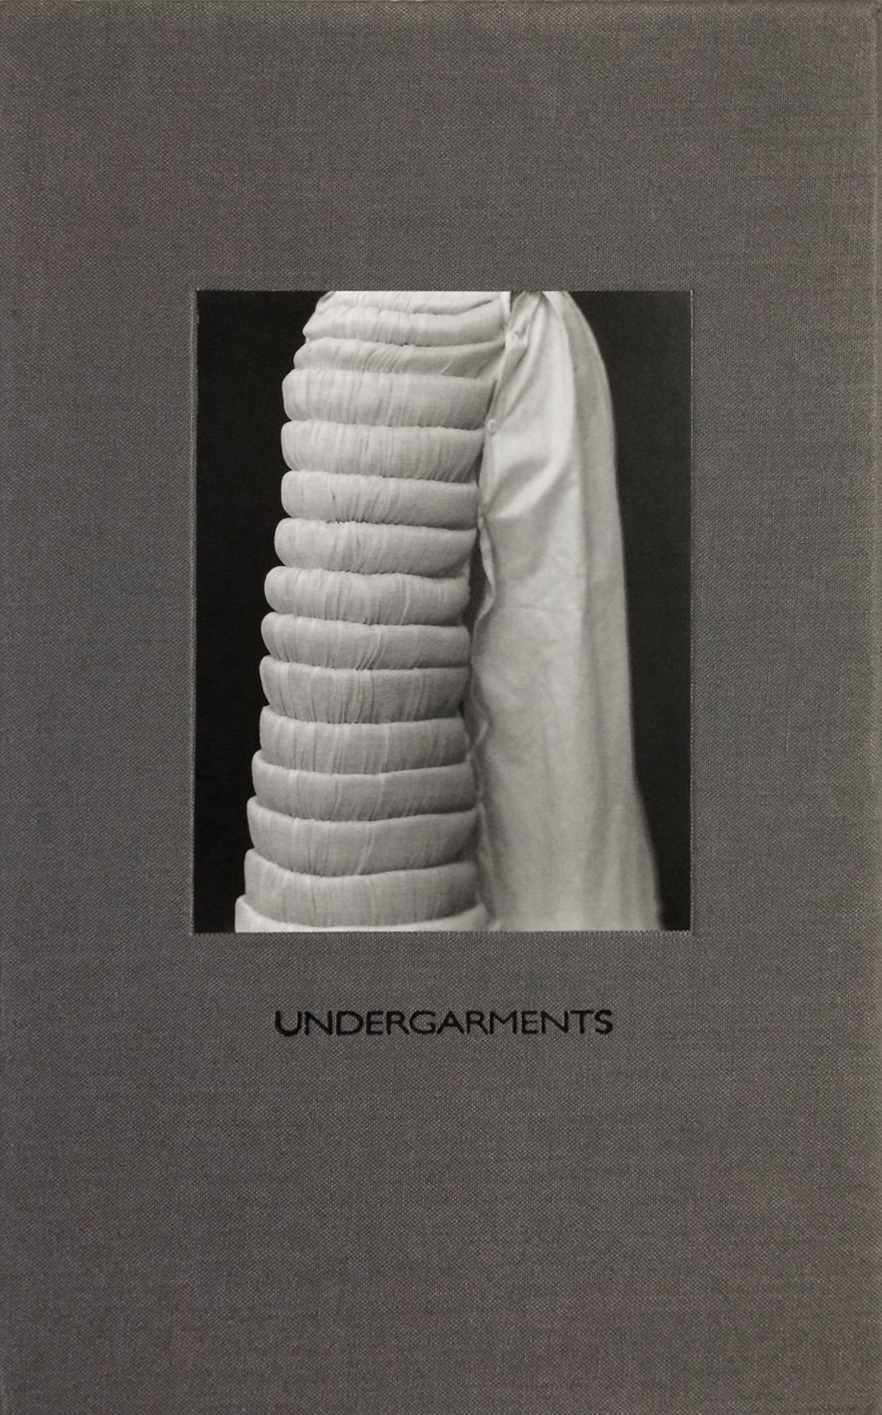 Undergarments_COVER copy.jpg